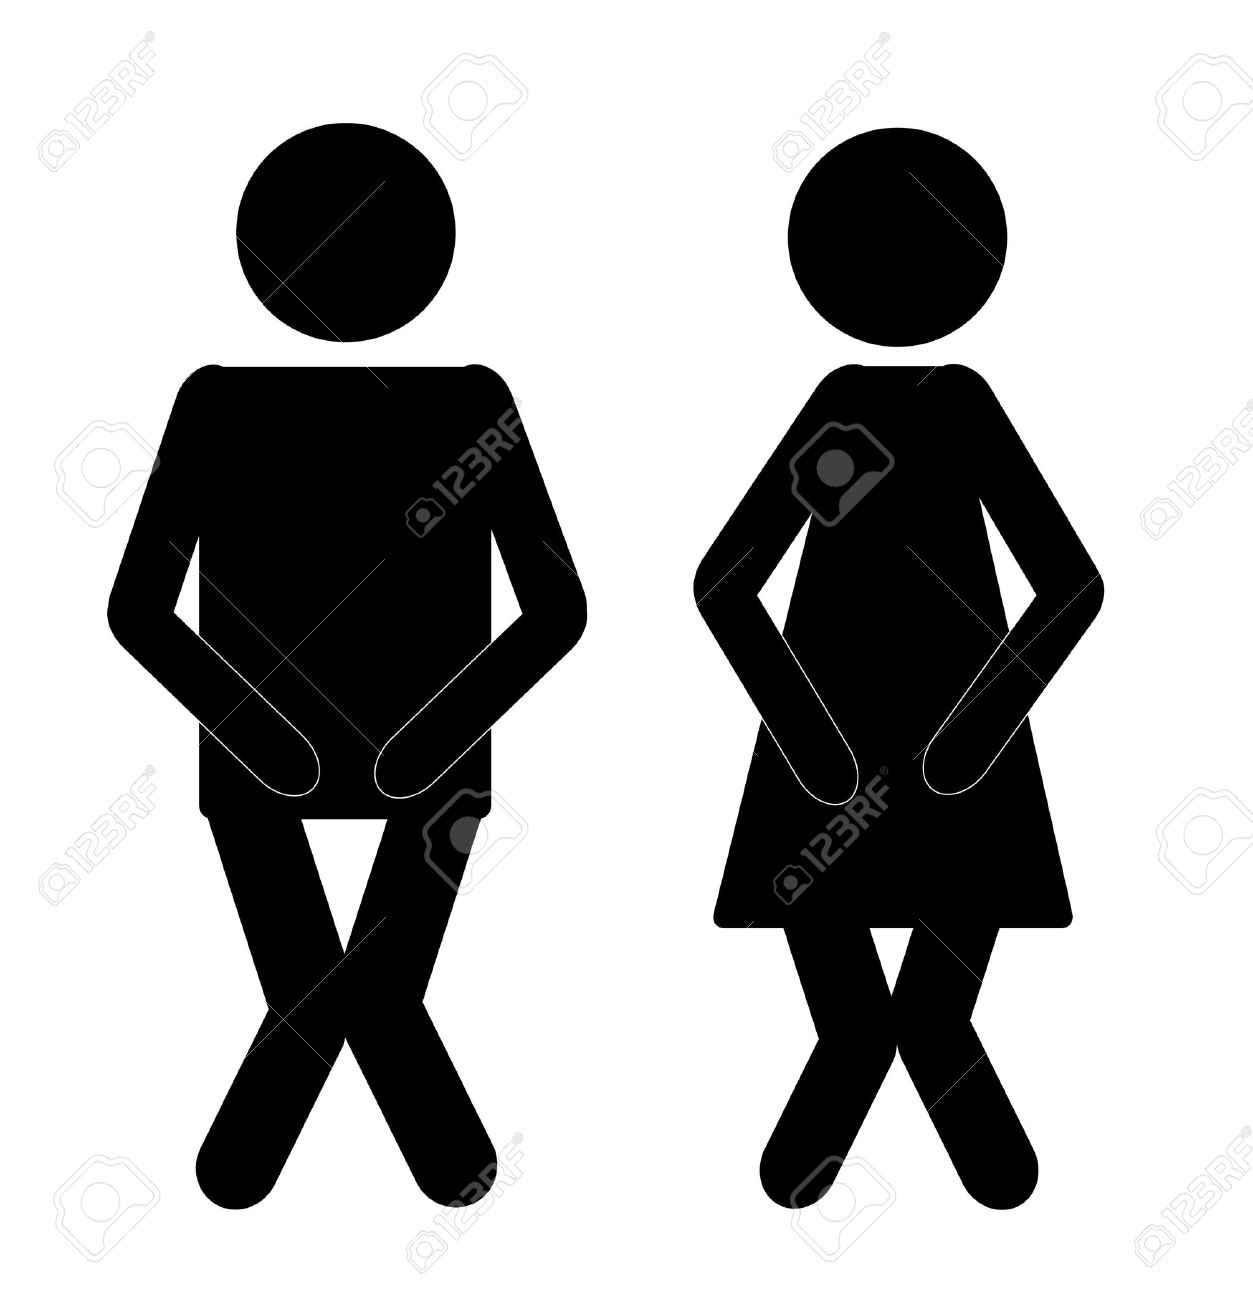 restroom sign new bathroom for ideas toilet classicmetalsigns female male signs by just